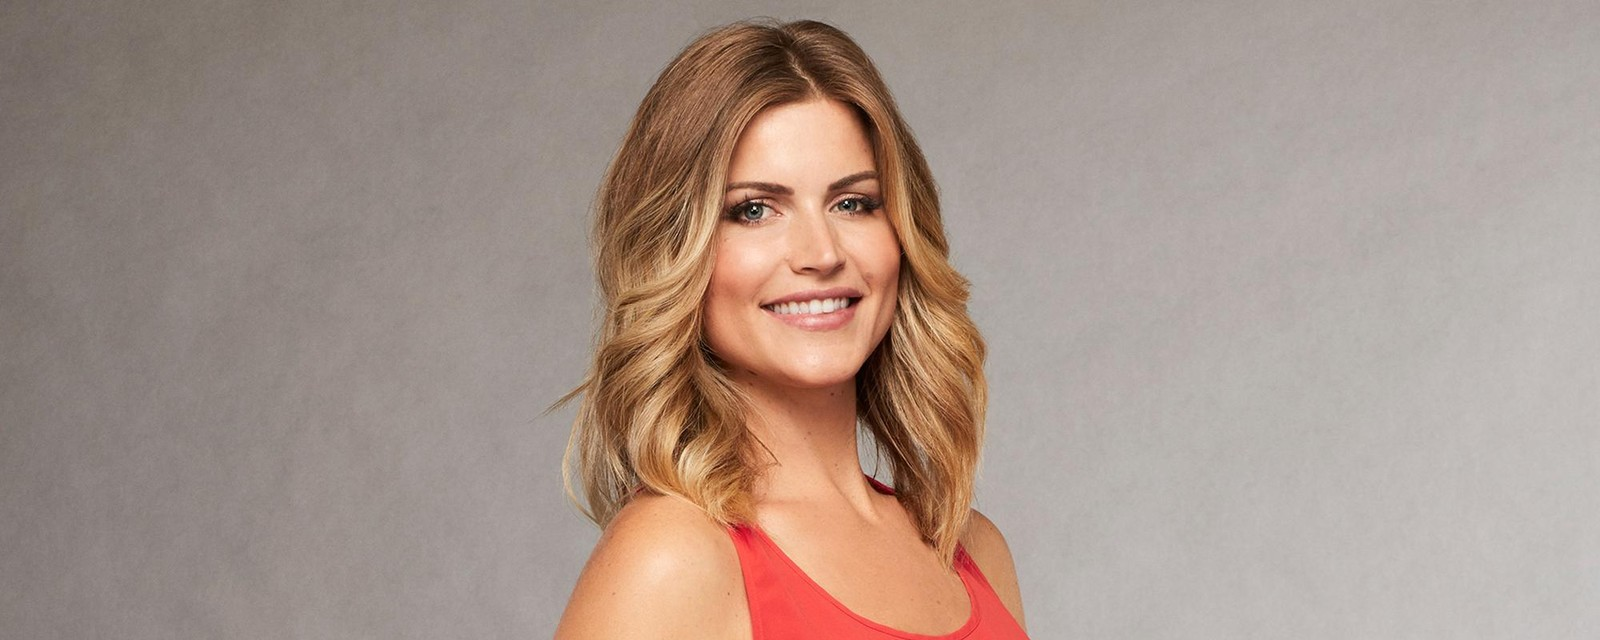 Chelsea from 'The Bachelor' Season 22